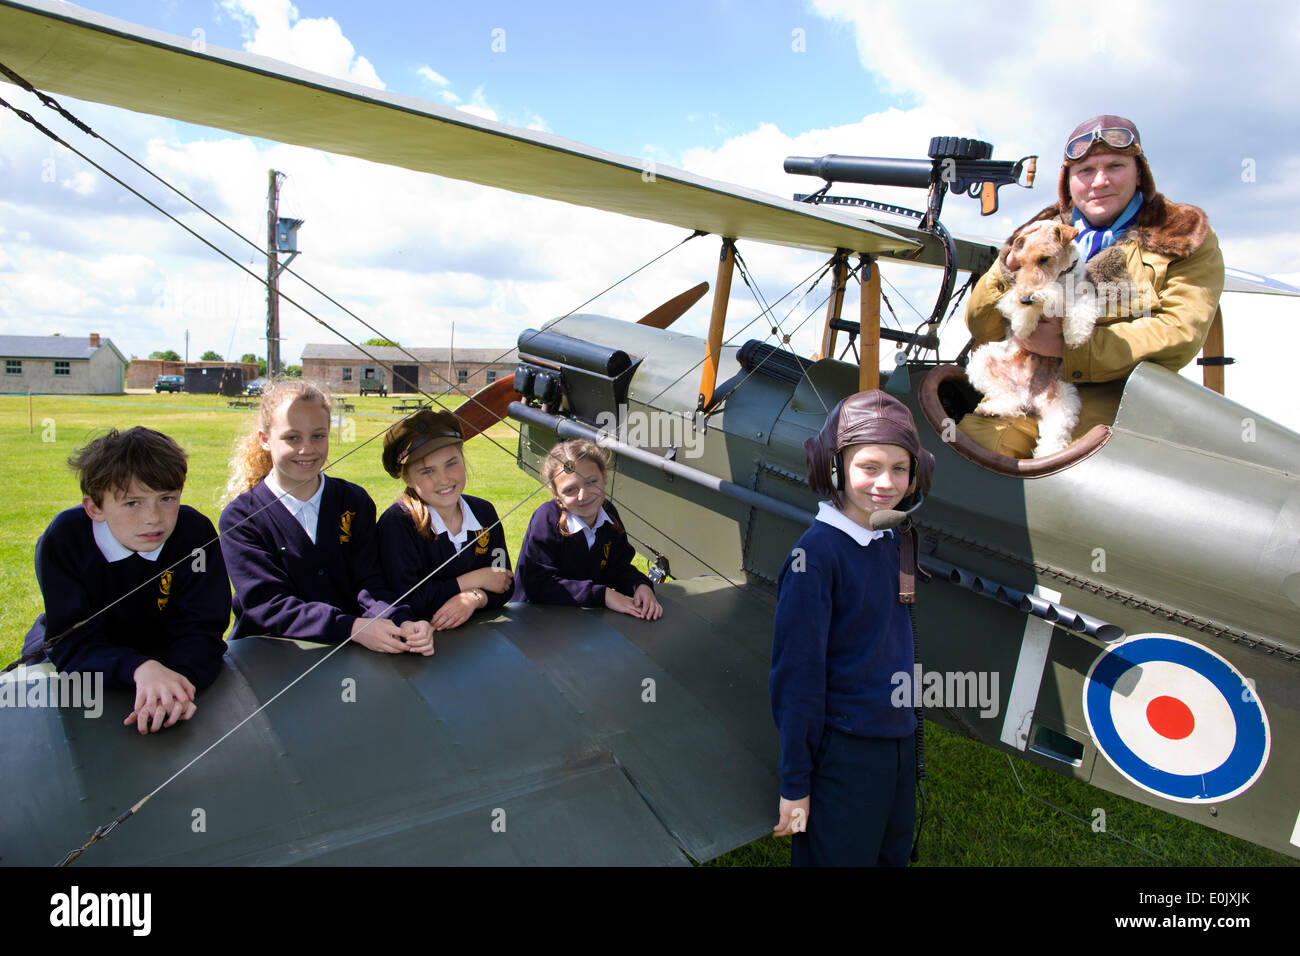 Stow Maries Aerodrome, UK. 14th May, 2014. Commemoration of Edgar Roberts WWI Royal Flying Corps Pilot accompanied on his fighter pilot missions by his terrier Mersea Mick Picture shows pupils (l-r) Ben Rumble, Zoe Clegg, Alannah Murrel, Amber Jones and Cameron Hope from the Mersea Island School visiting Stow Maries Aerodrome gathered around a SE5a replica WWI aeorplane alongside pilot (Trevor Poole). Credit:  Clickpics/Alamy Live News - Stock Image